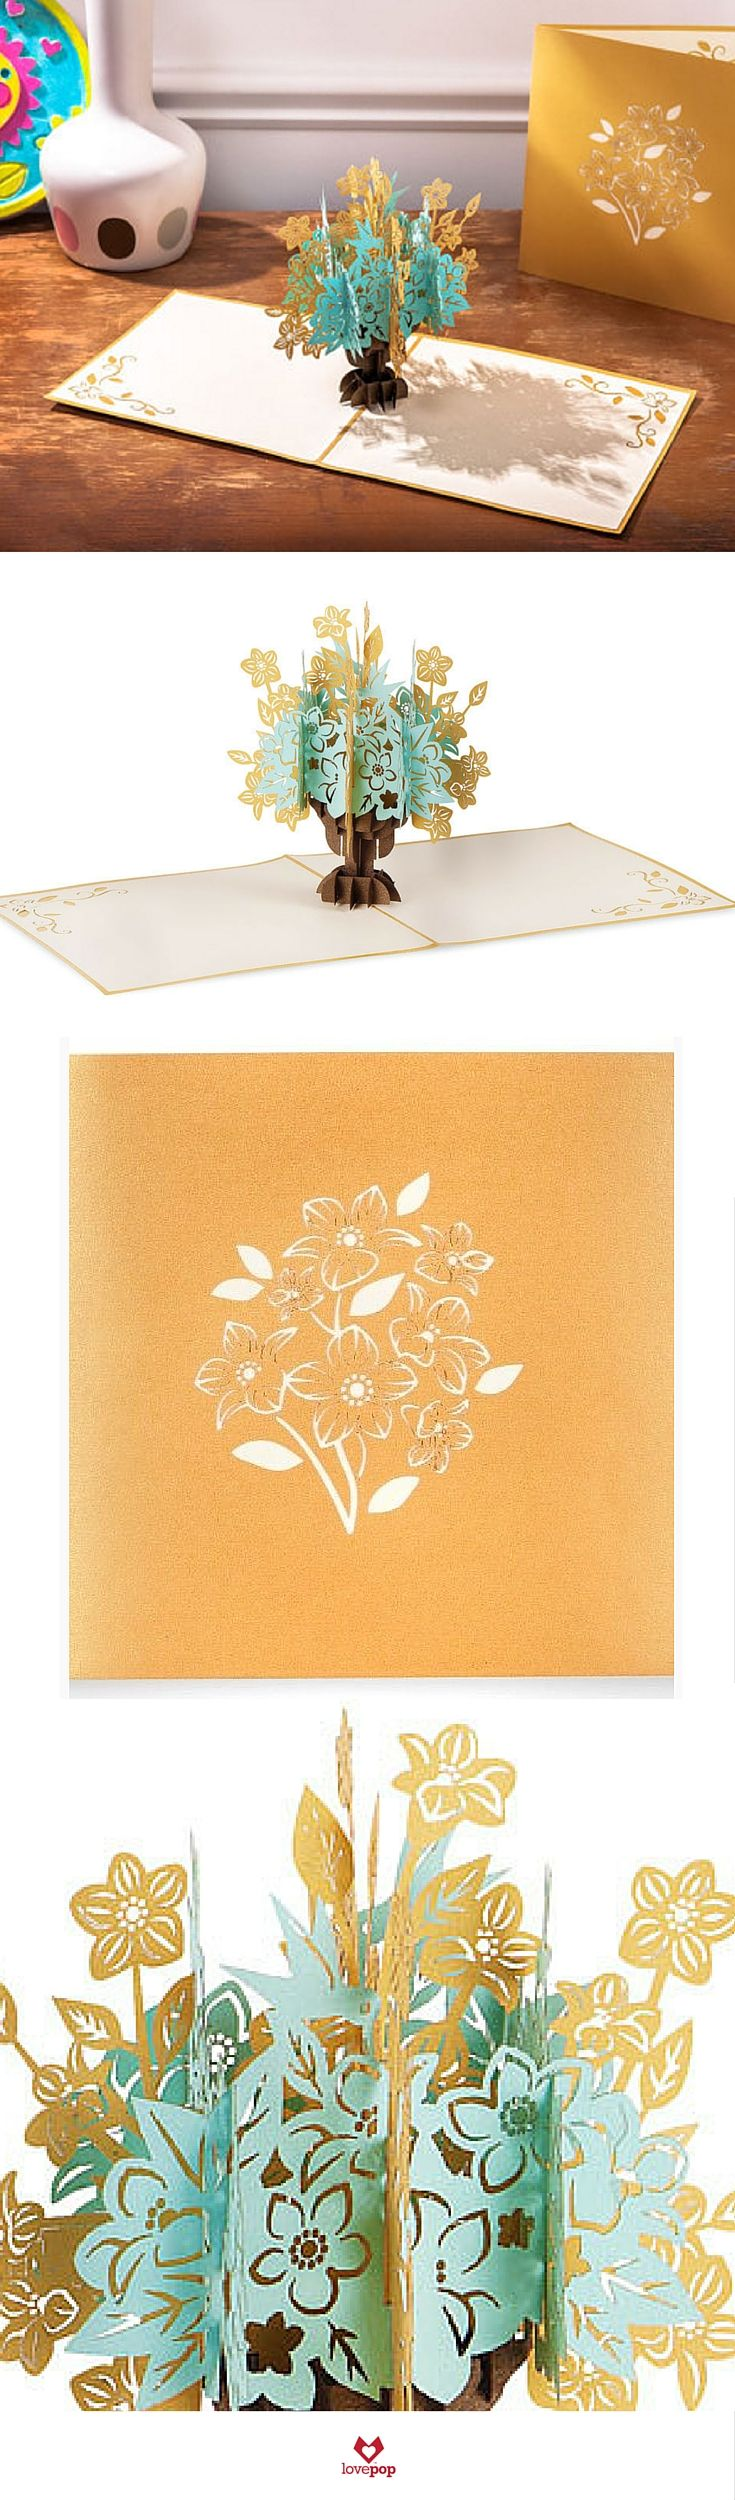 Floral bouquet gold art flowers d and kirigami